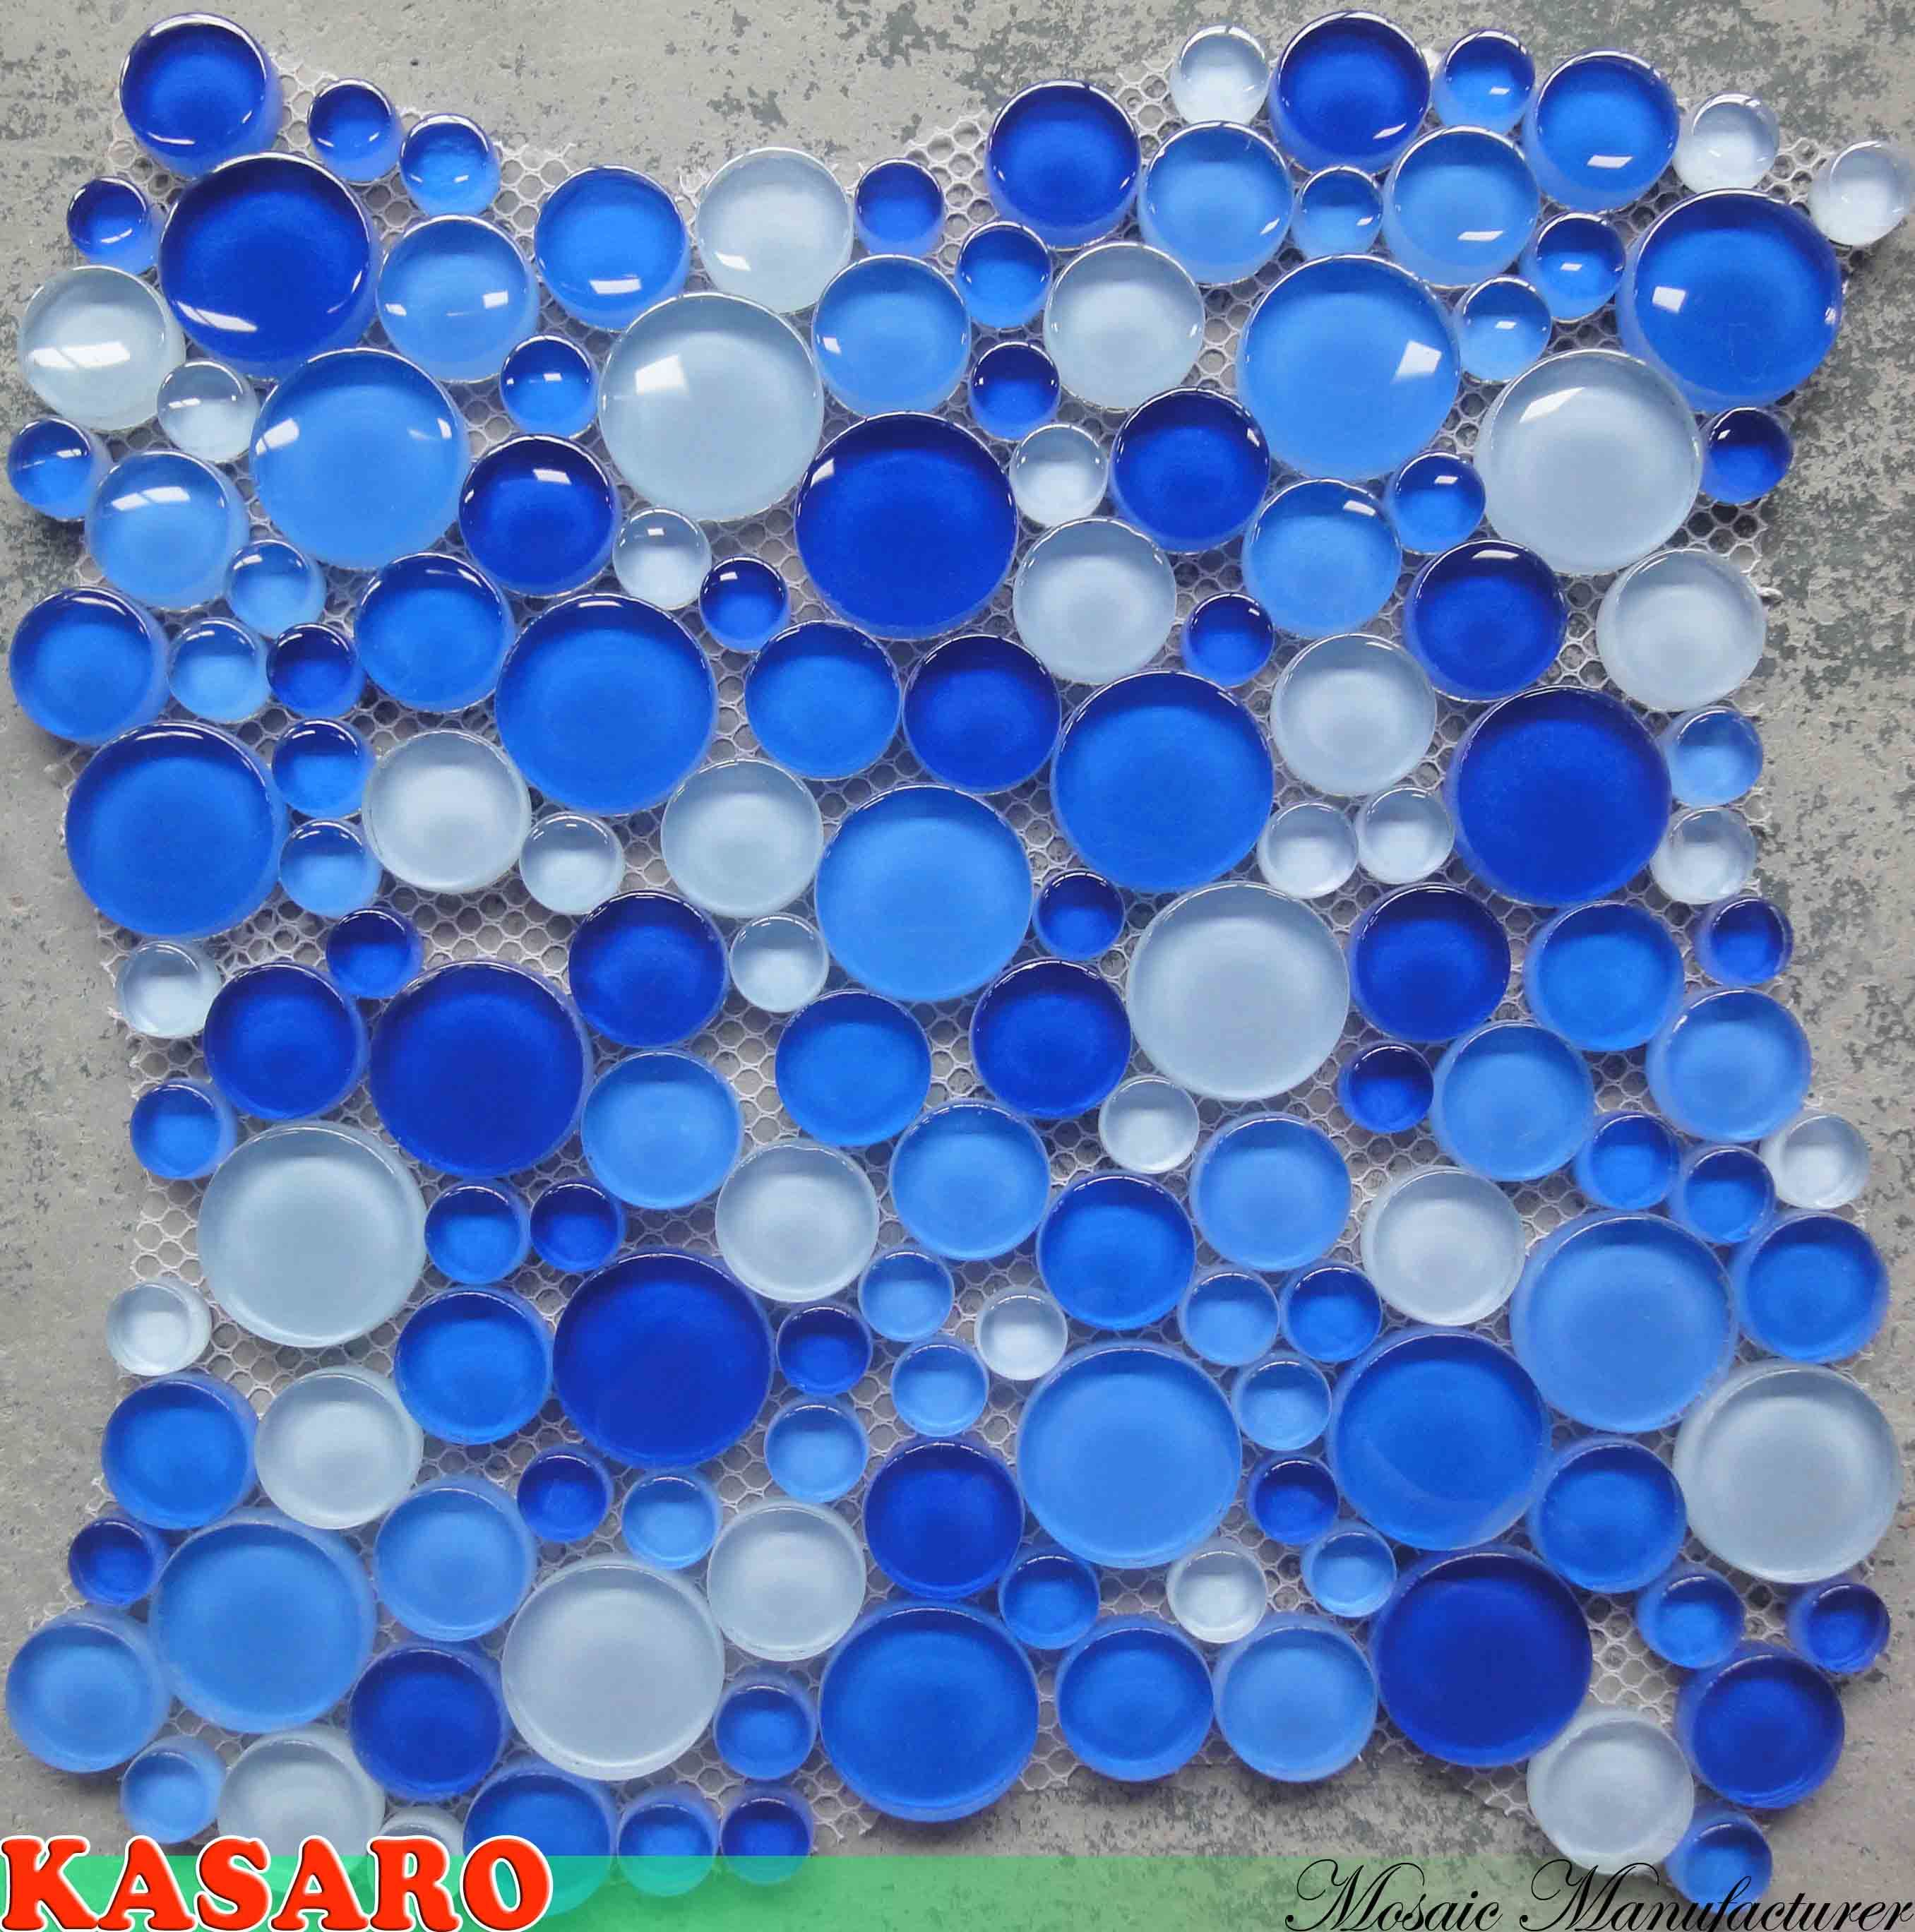 china blue round wall tile glass mosaic ksl c10100 photos pictures